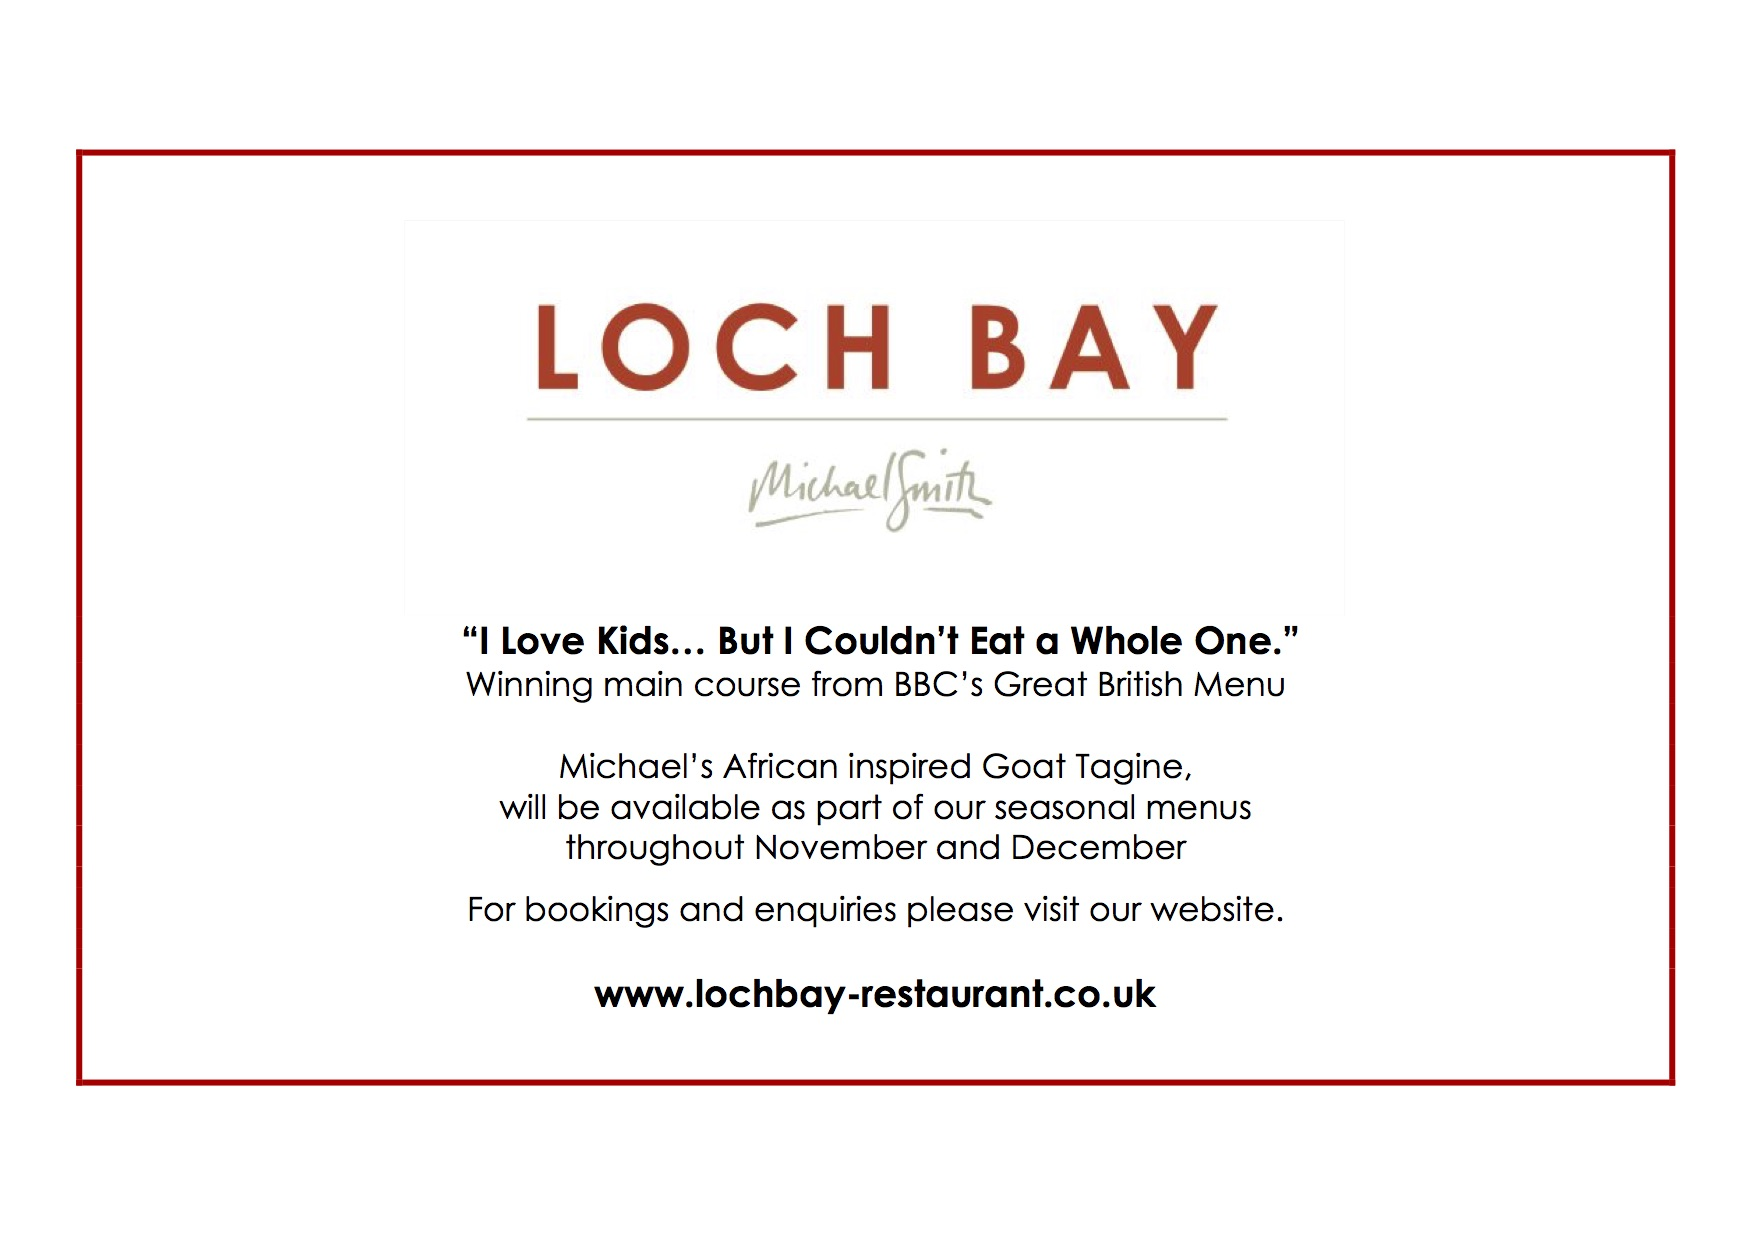 lochbay-restaurant-i-love-kids-winter-advert